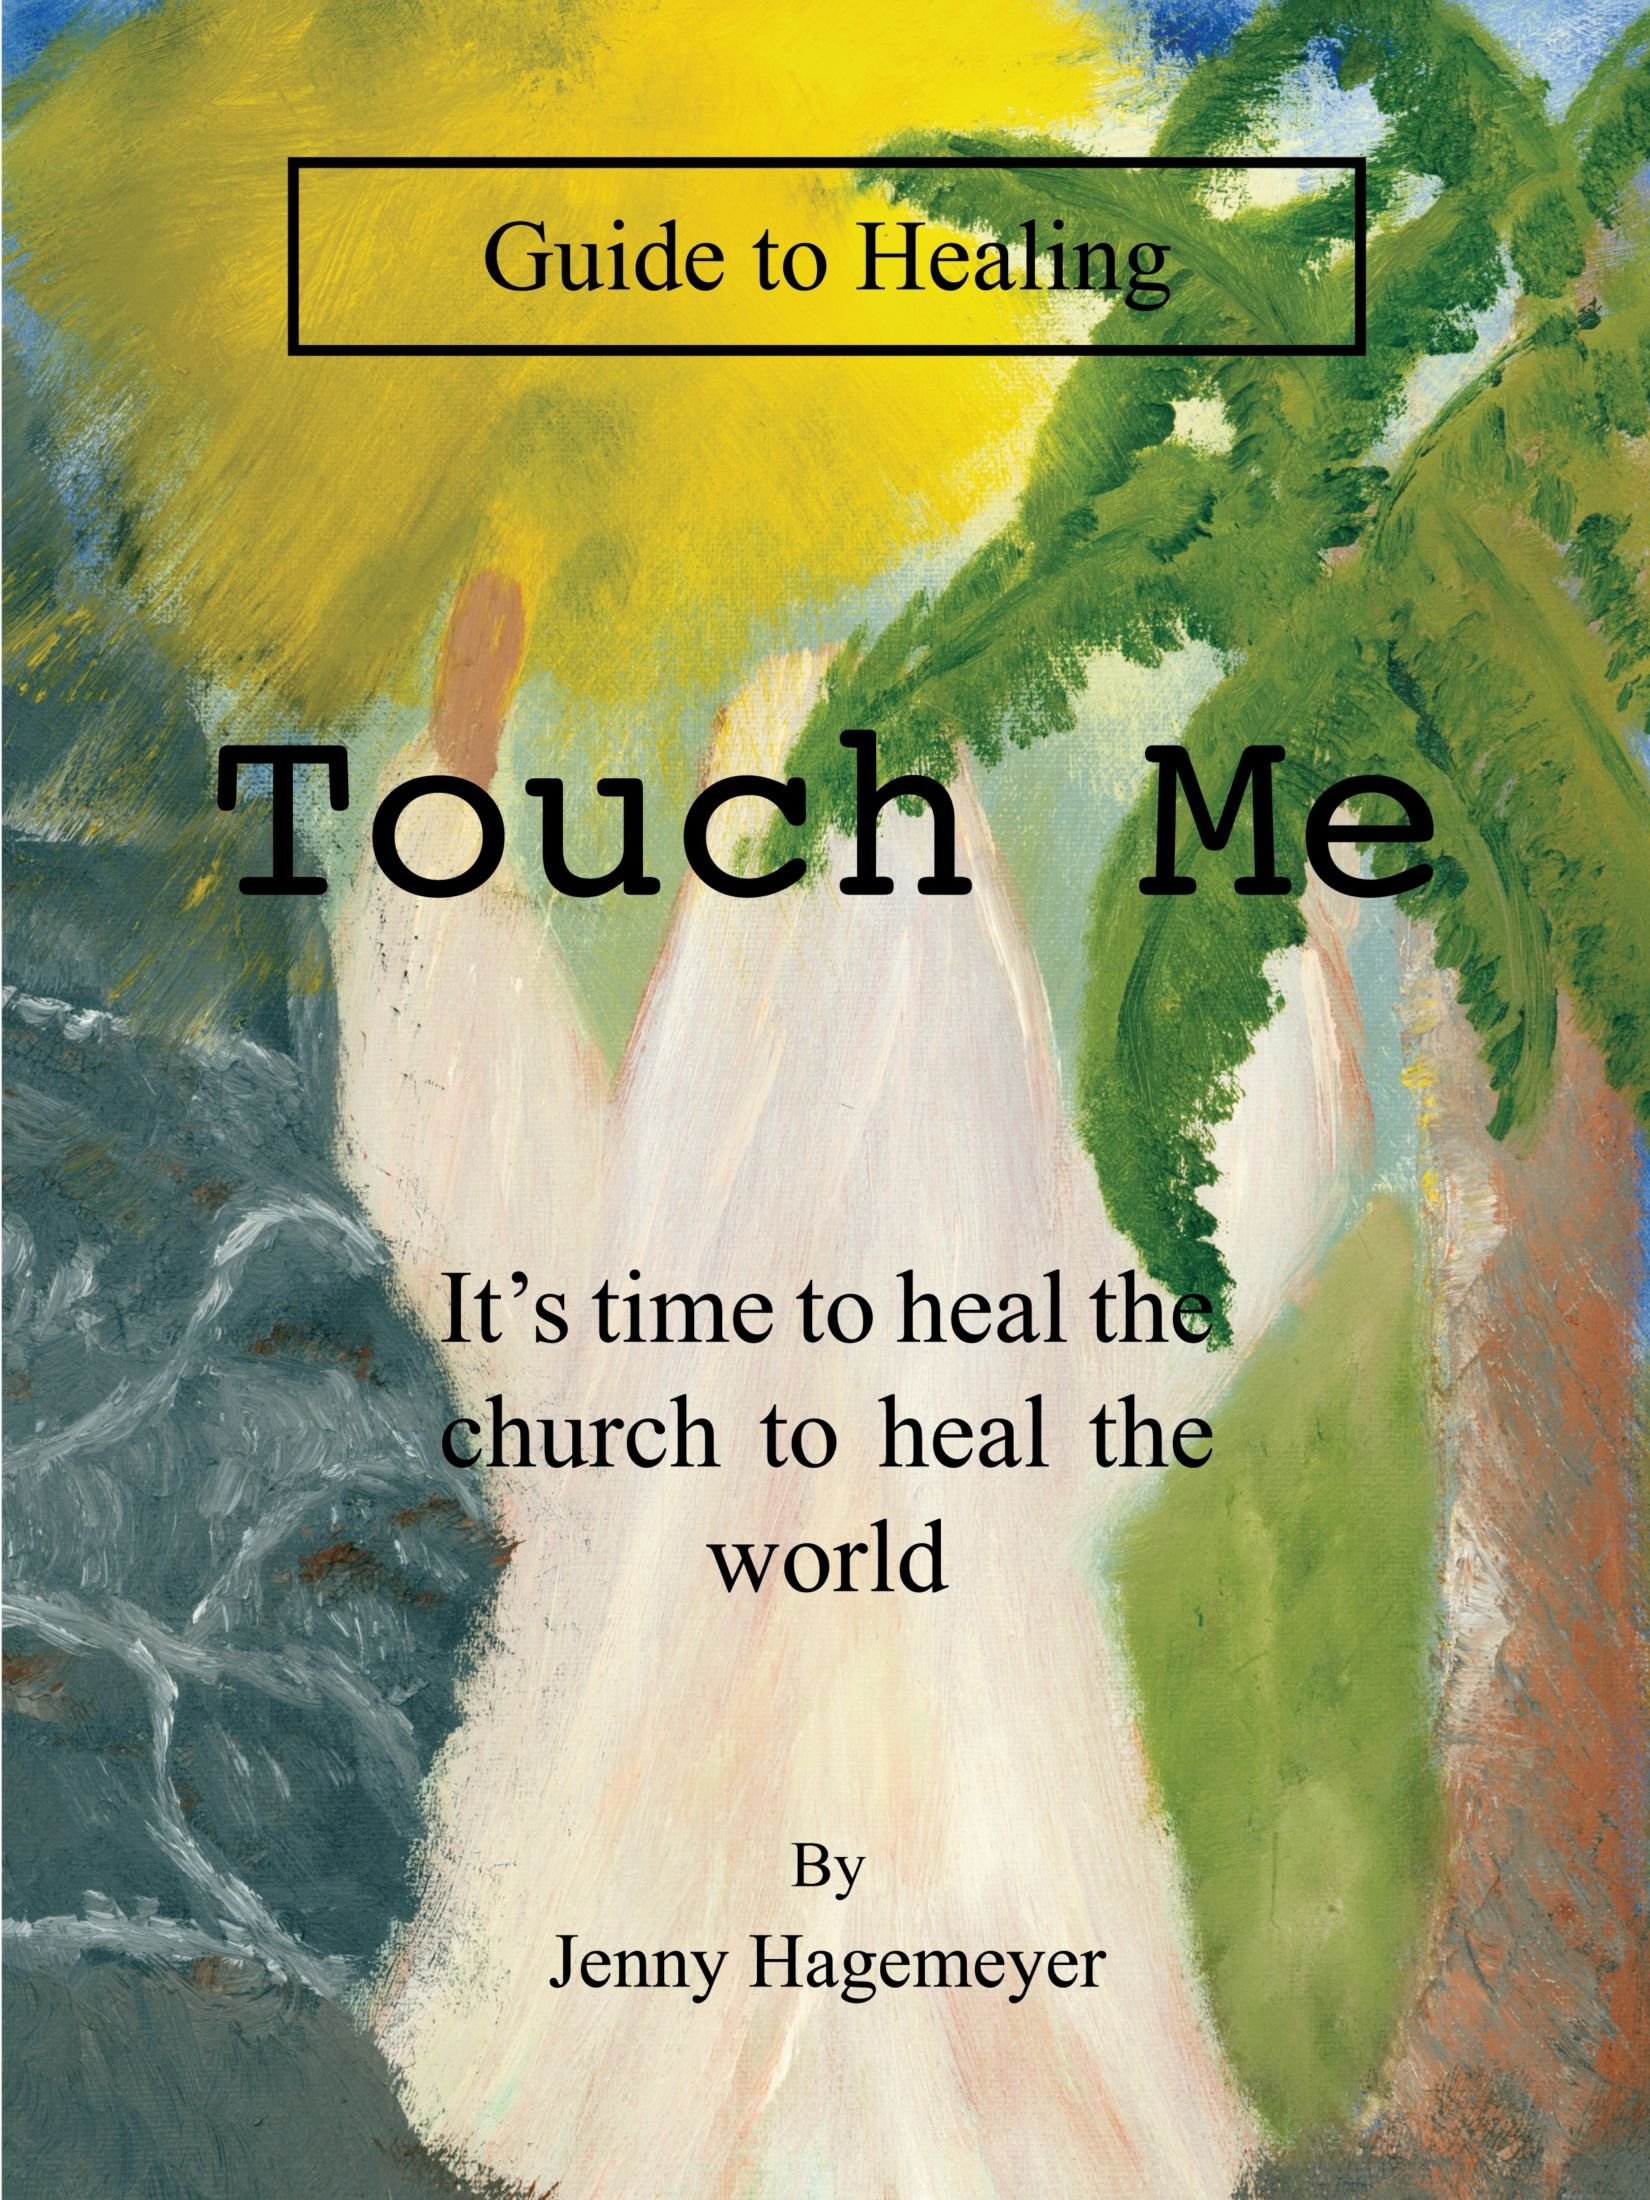 Touch Me Guide To Healing: It's time to heal the church to heal the world PDF